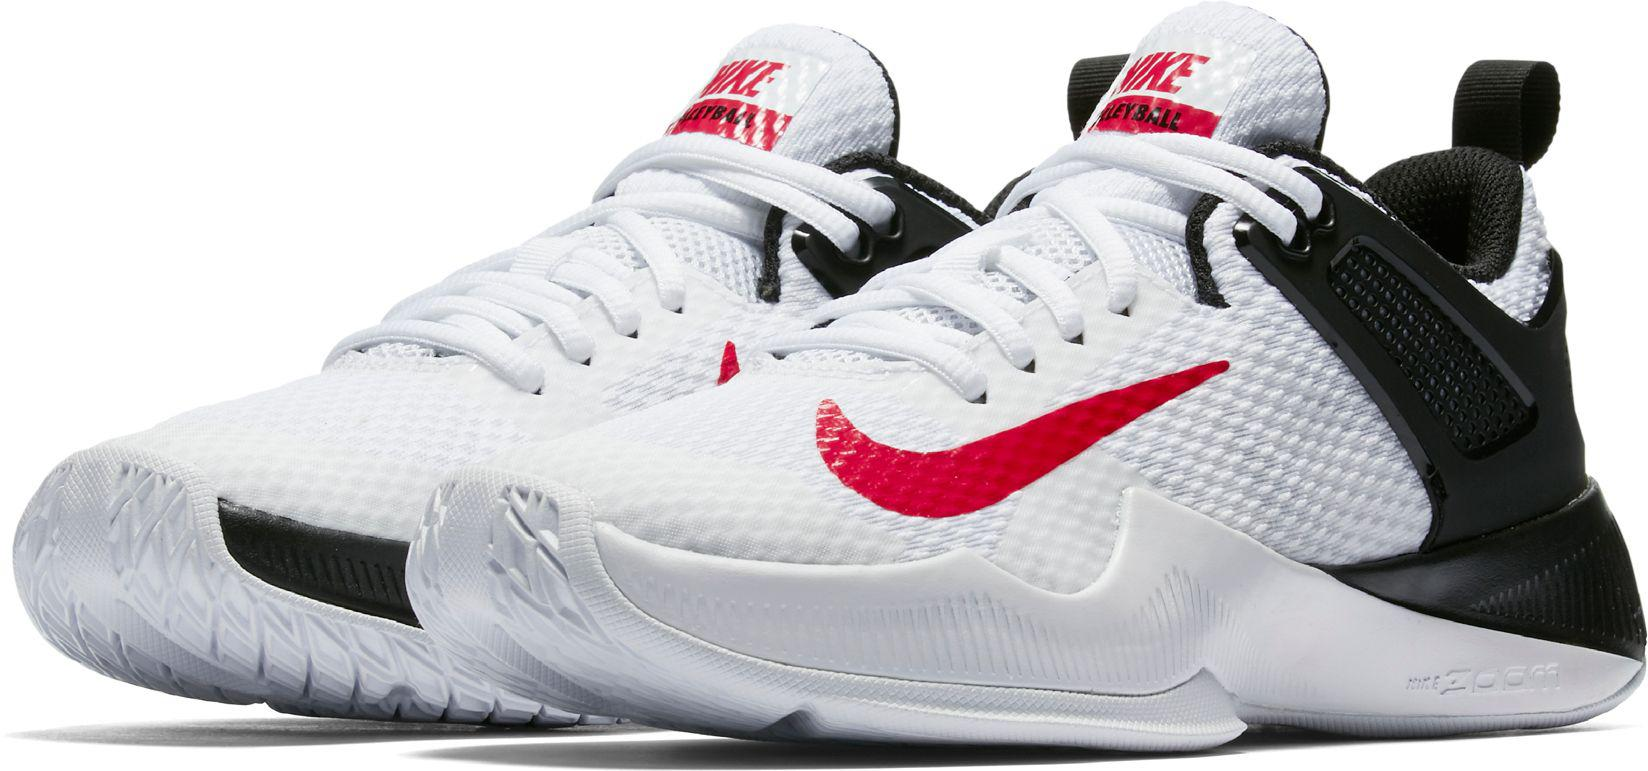 new product 5e4c0 38d8b Nike - Multicolor Air Zoom Hyperace Volleyball Shoes for Men - Lyst